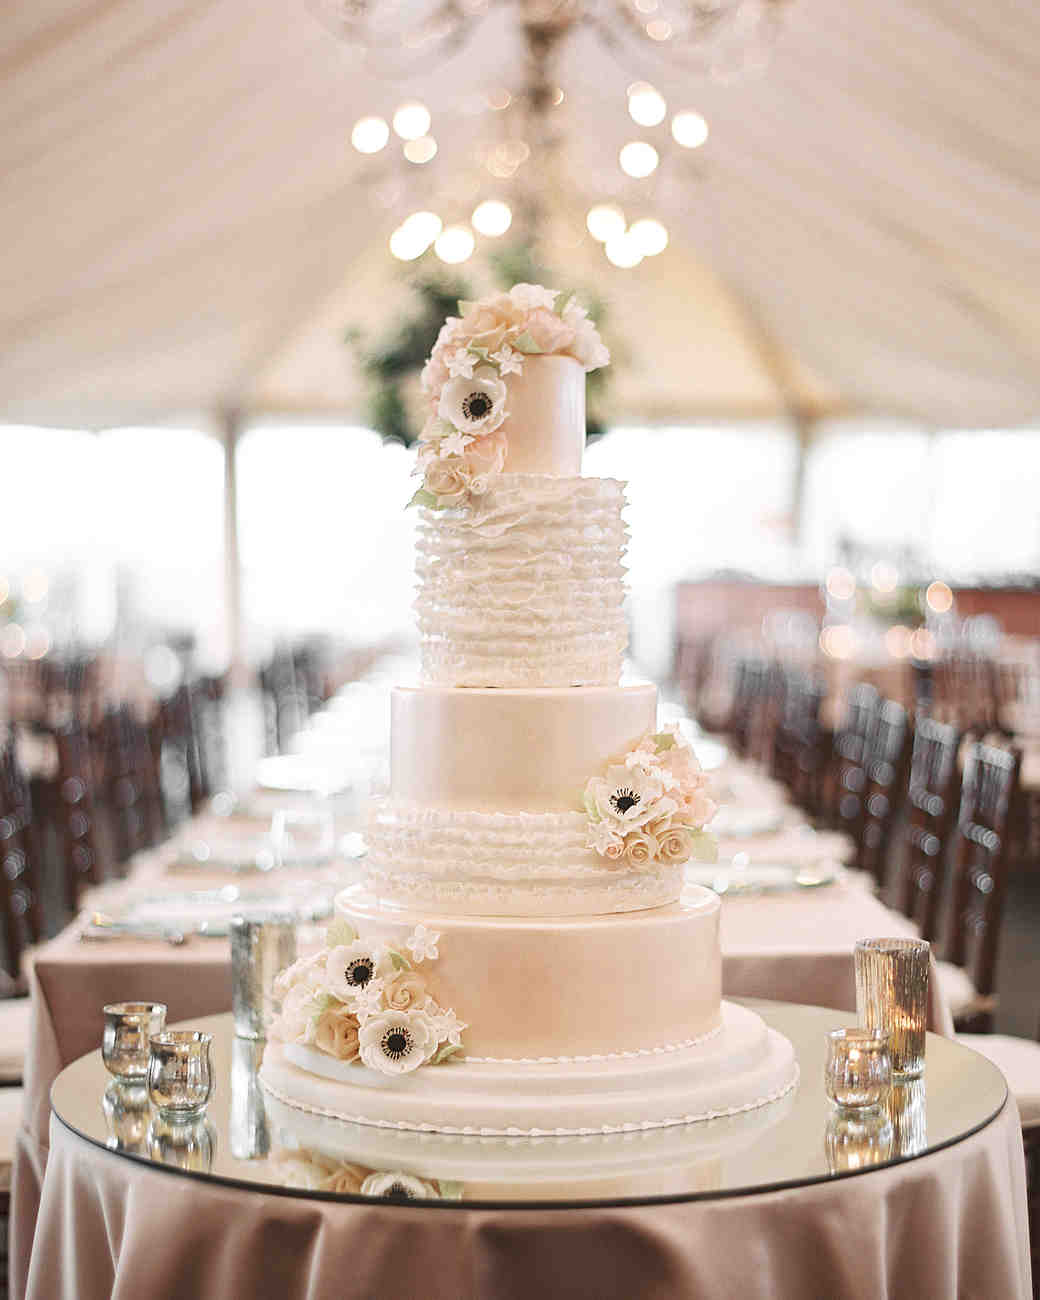 Everything You Need To Know About Wedding Cake: 16 Things You Need To Know To Pull Off An Outdoor Wedding